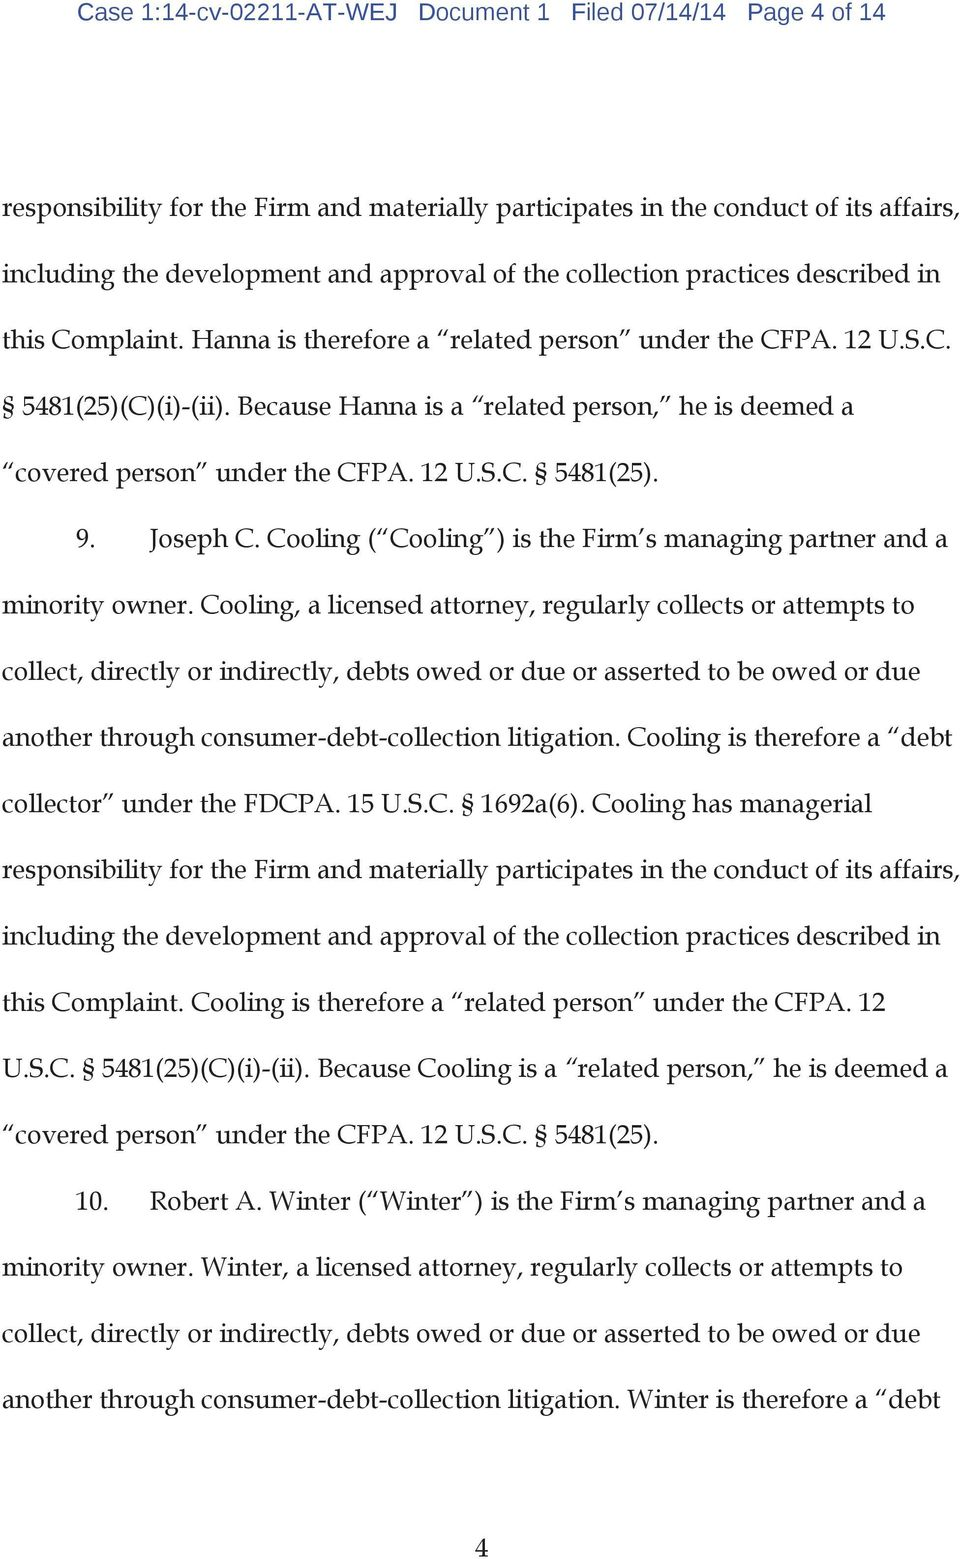 Because Hanna is a related person, he is deemed a covered person under the CFPA. 12 U.S.C. 5481(25). 9. Joseph C. Cooling ( Cooling ) is the Firm s managing partner and a minority owner.